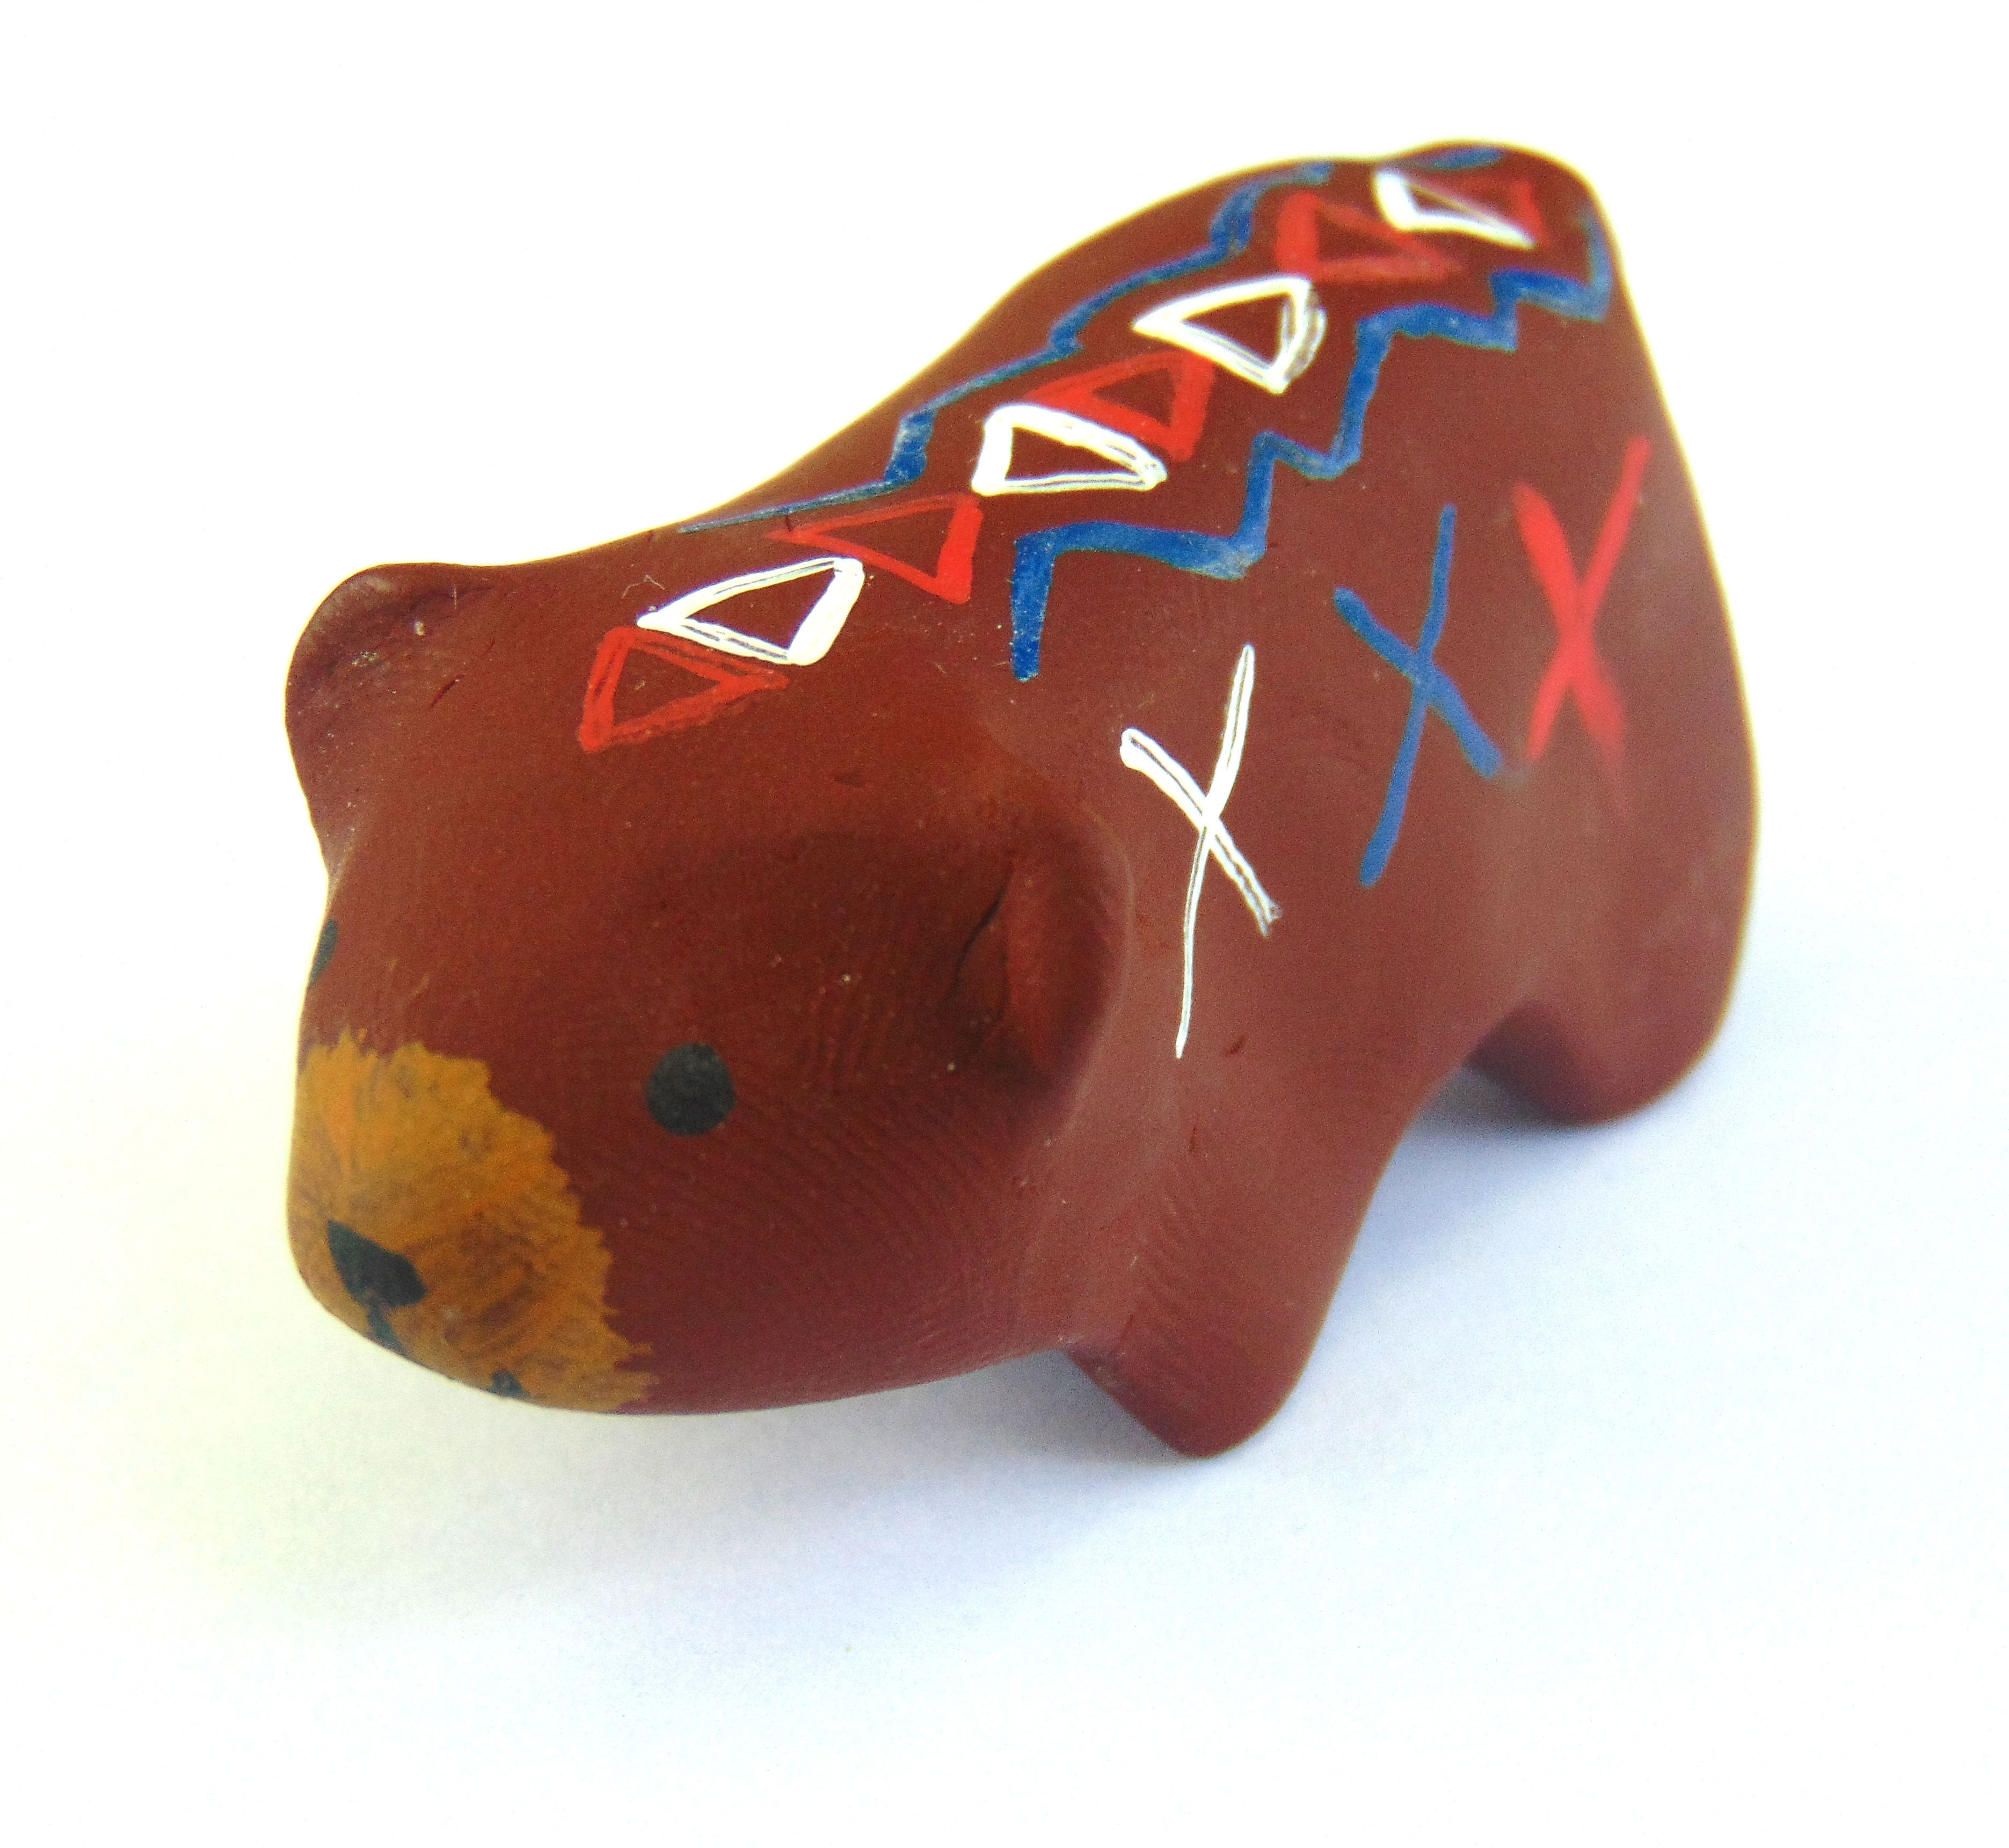 painted brown miniature totem tribal patterned sculpture polymer clay animal bear mini sculpey